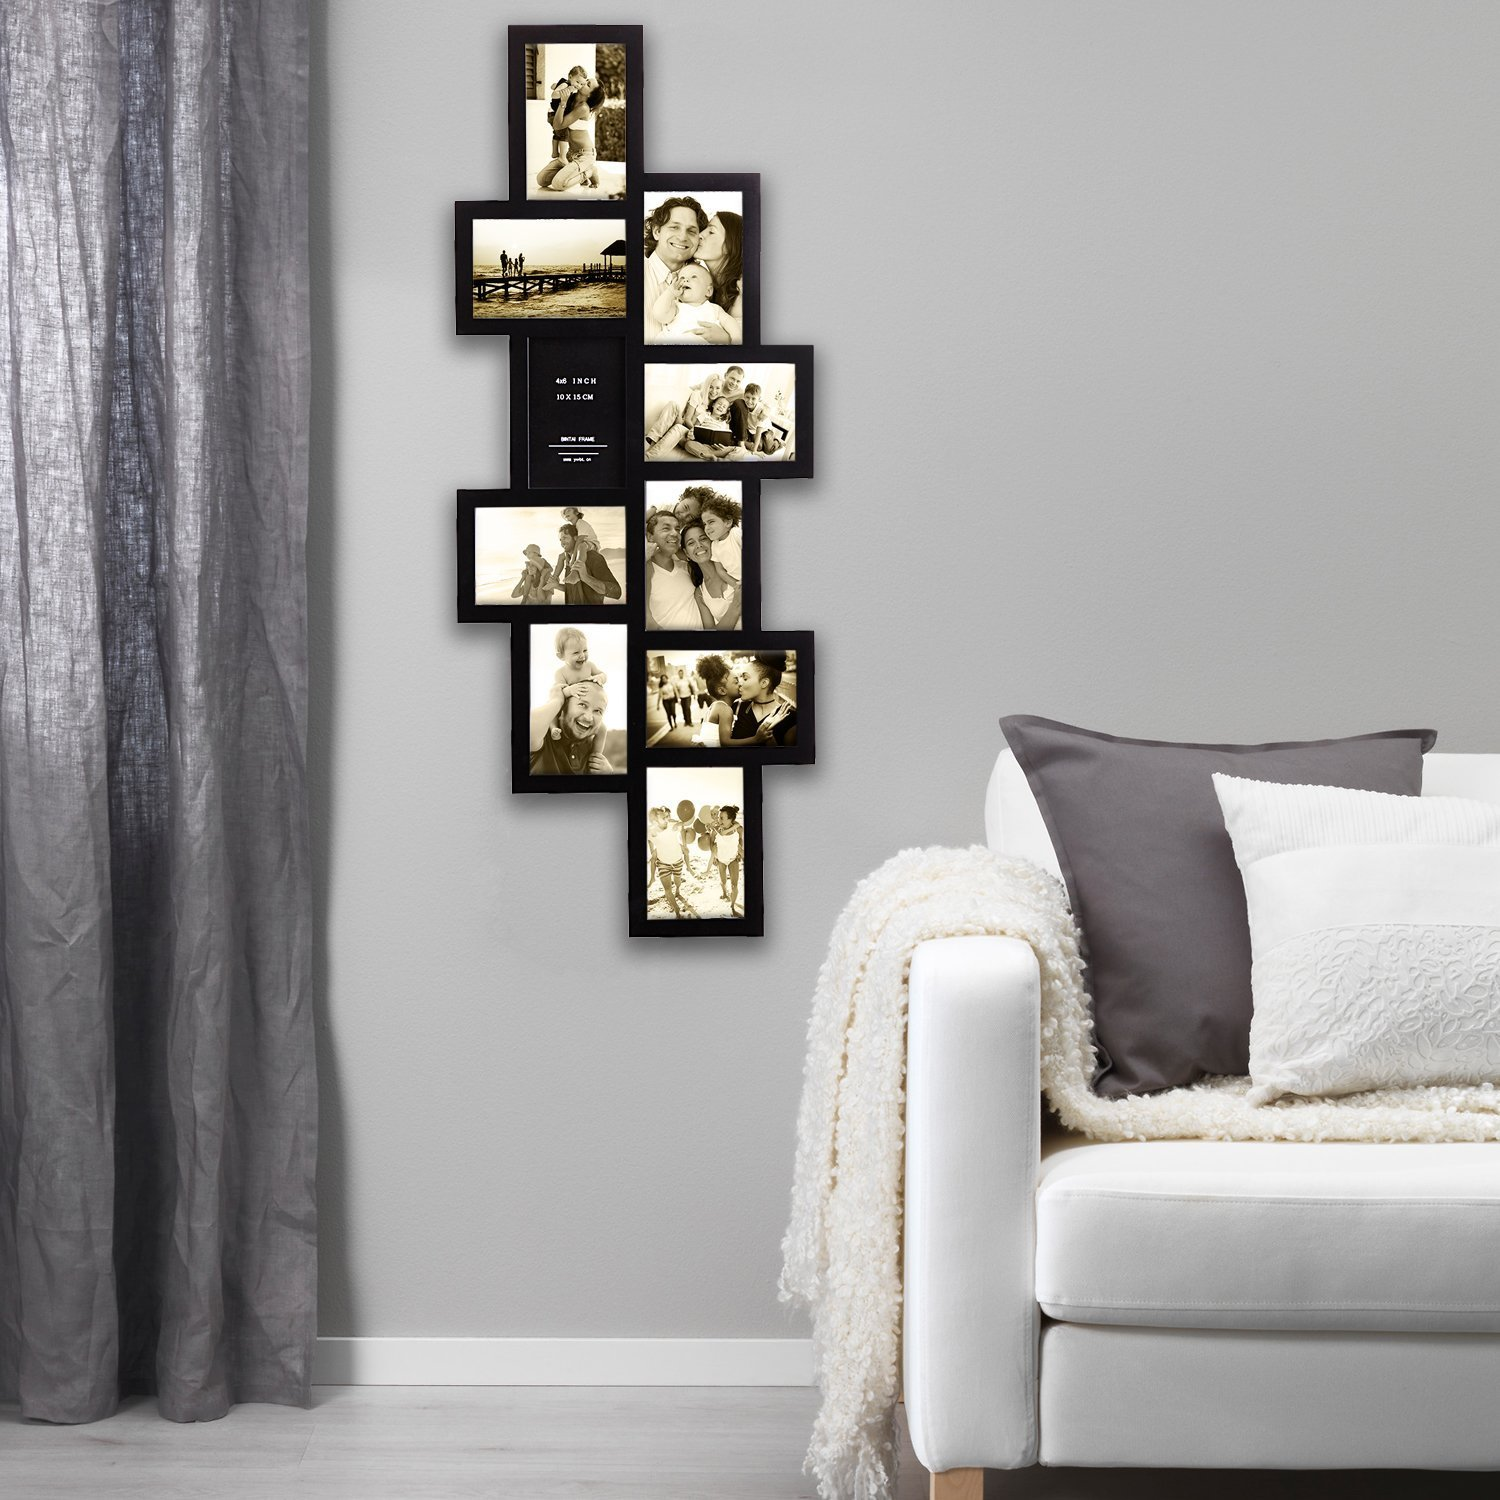 Hello Laura - 33 by 13.5'' inch Wall Hanging Photo Frame, 4 x 6'' inch Photo Sockets x 10, 10 opening Black Frame Edge | Gallery Style by Hello Laura (Image #3)